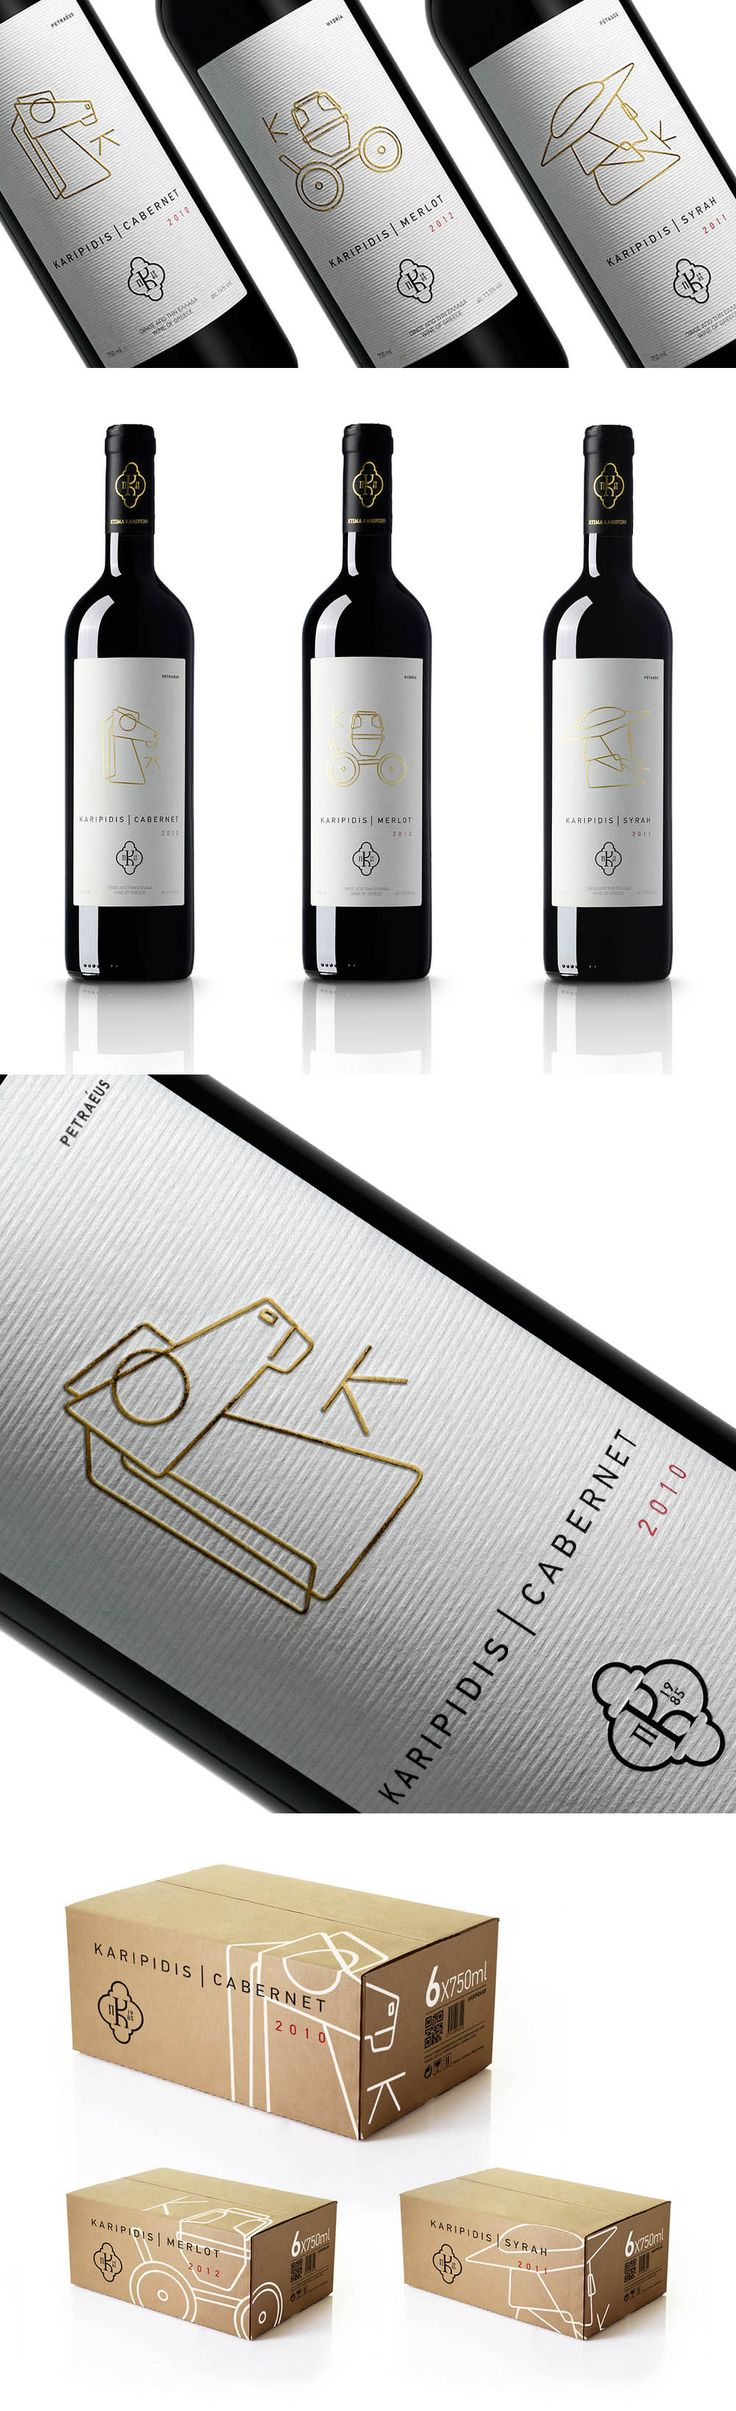 Karipidis Winery Packaging Design